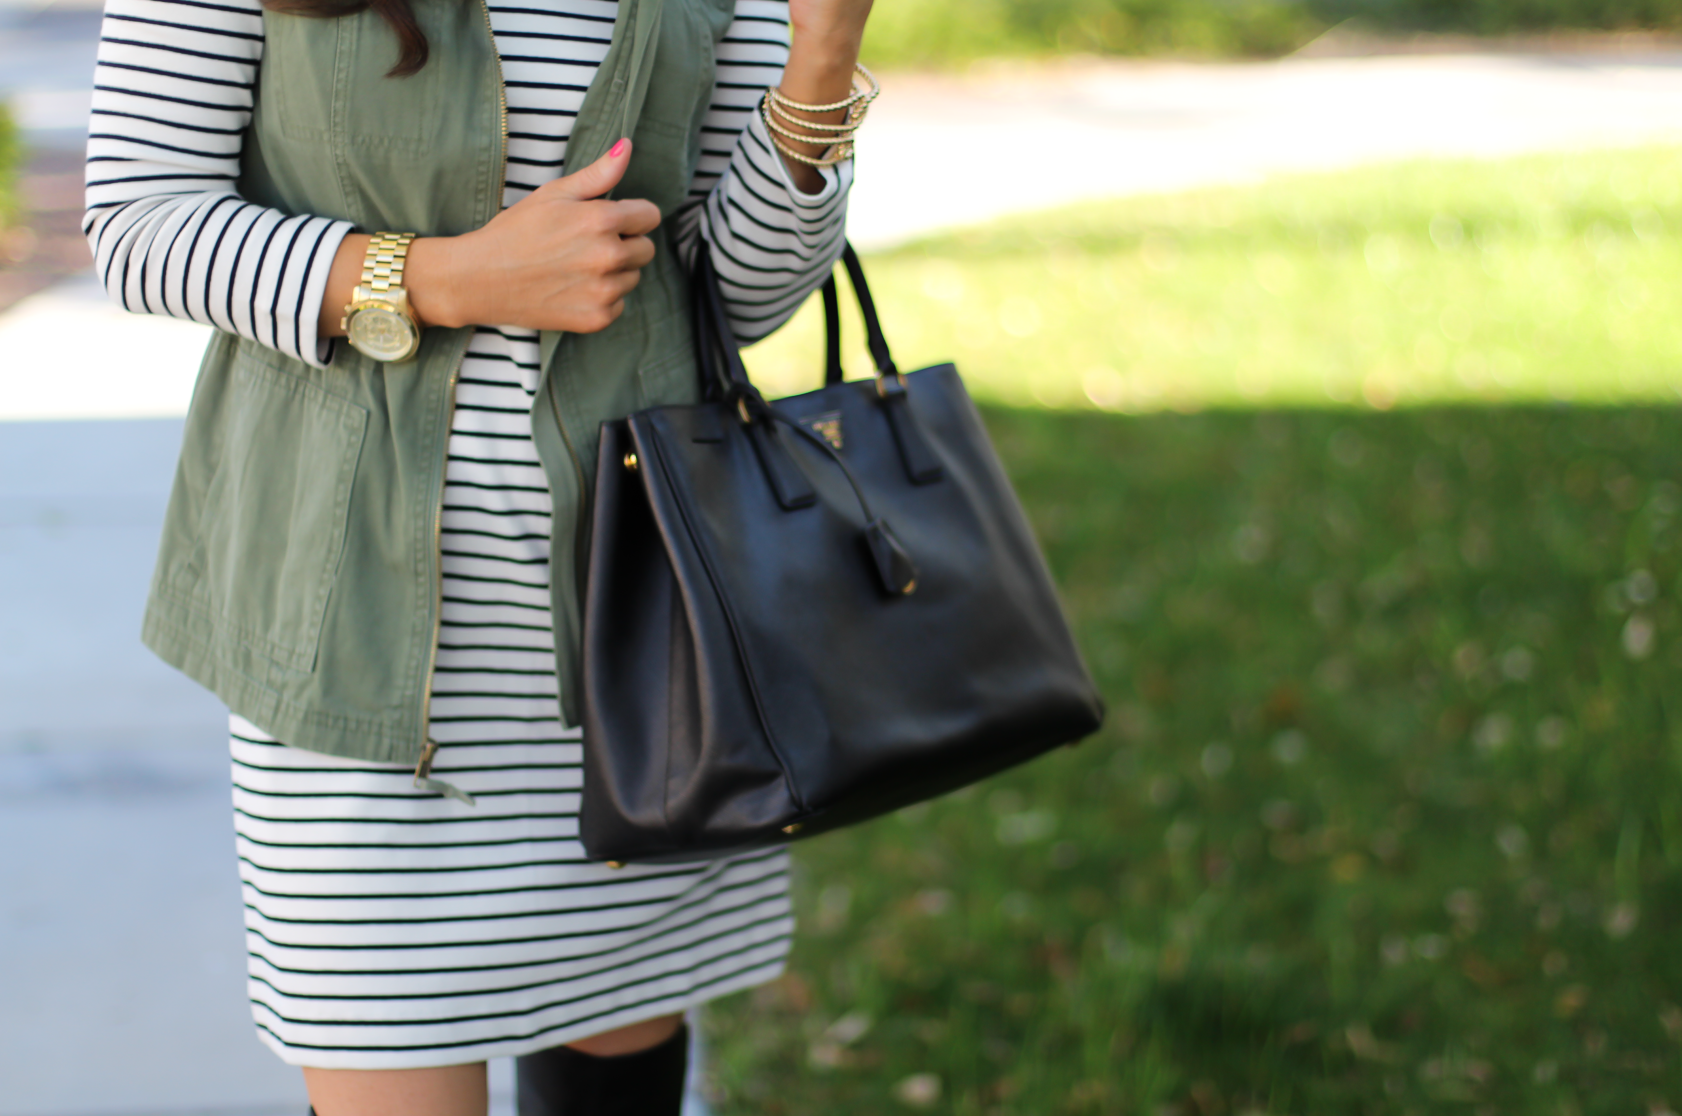 Black and White Striped Dress, Green Utility Vest, Black Leather Over the Knee Boots, Black Leather Tote, J.Crew Factory, Target, Stuart Weitzman, Prada 9